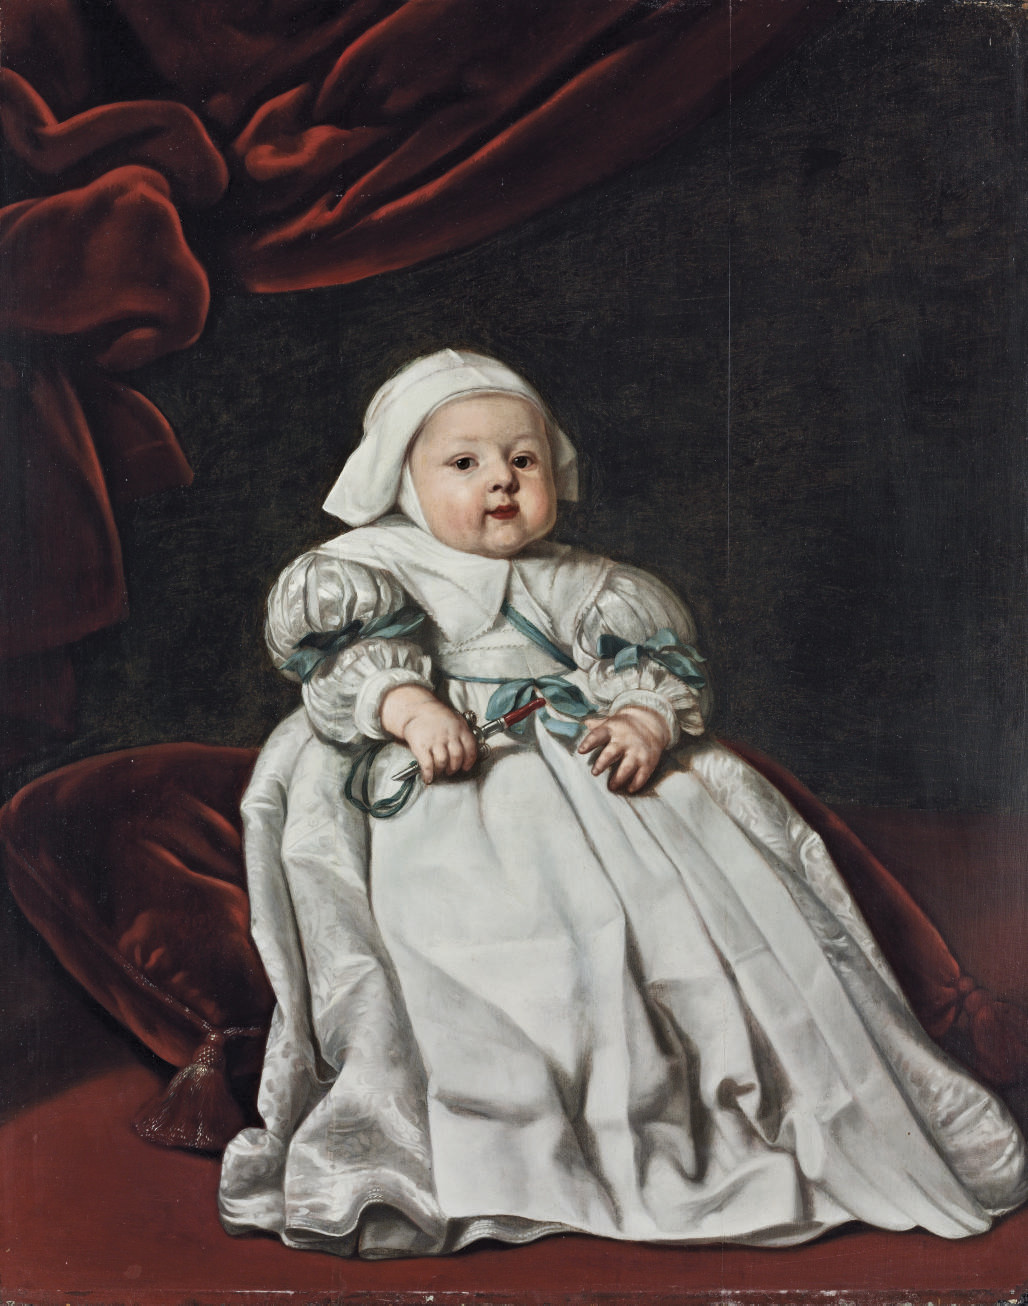 Portrait of a child, full-length, in a white gown and bonnet, holding a jewelled rattle, seated on a red cushion